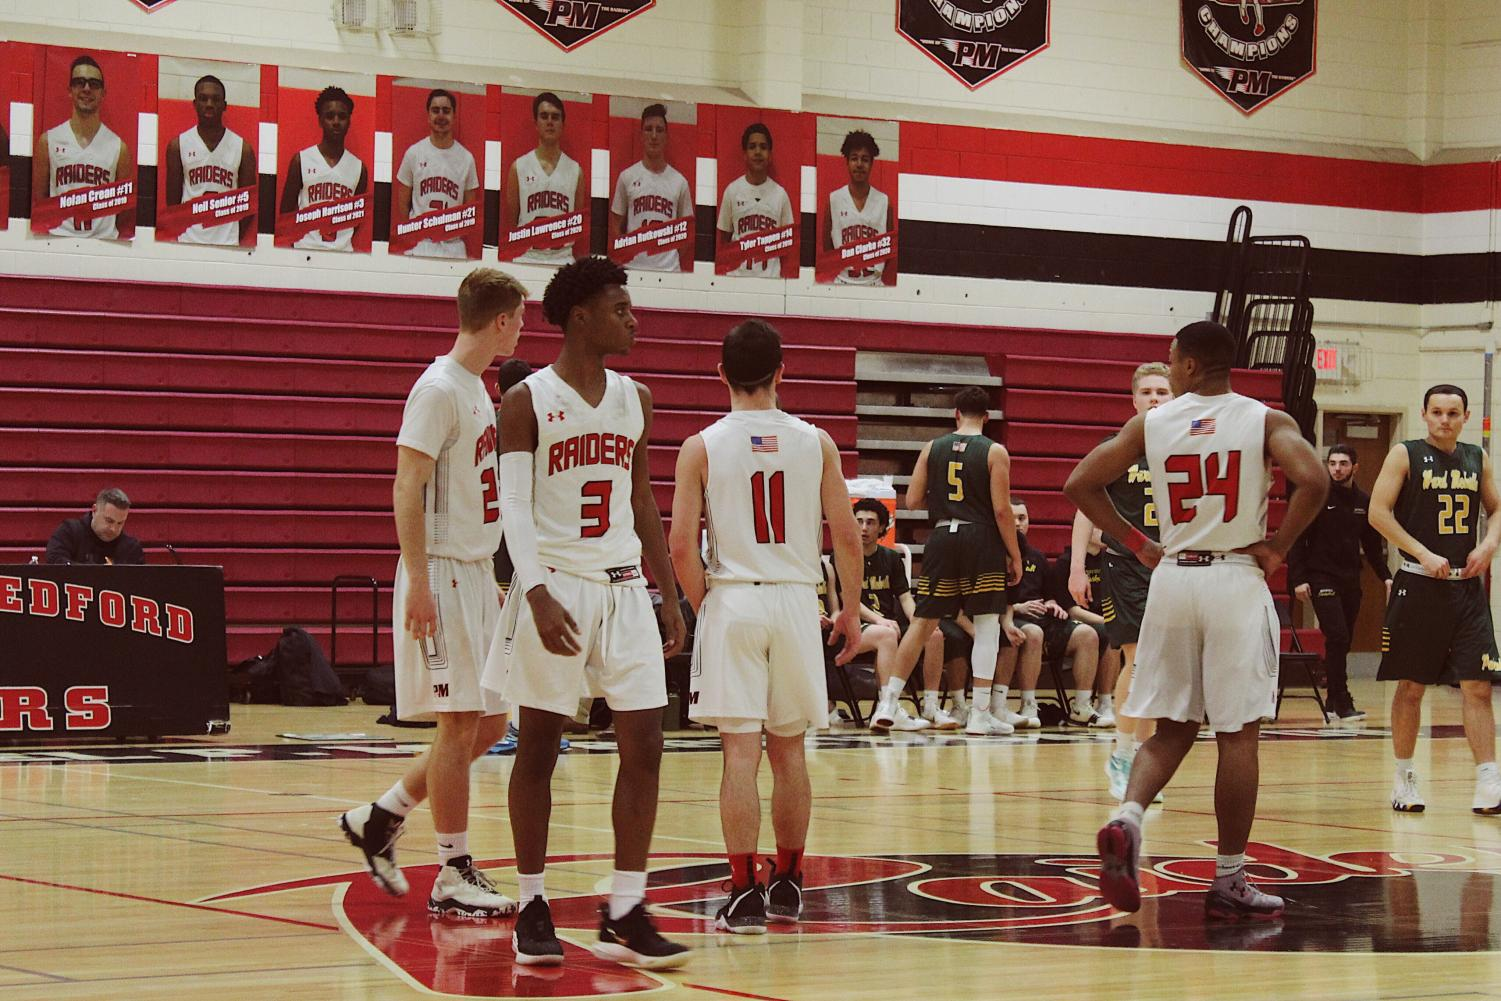 Patchogue+Medford+boys+basketball+team+played+Ward+Melville+on+January+17th.+The+score+ended+up+being+58-64%3B+great+efforts+but+a+loss+for+Pat+Med.+